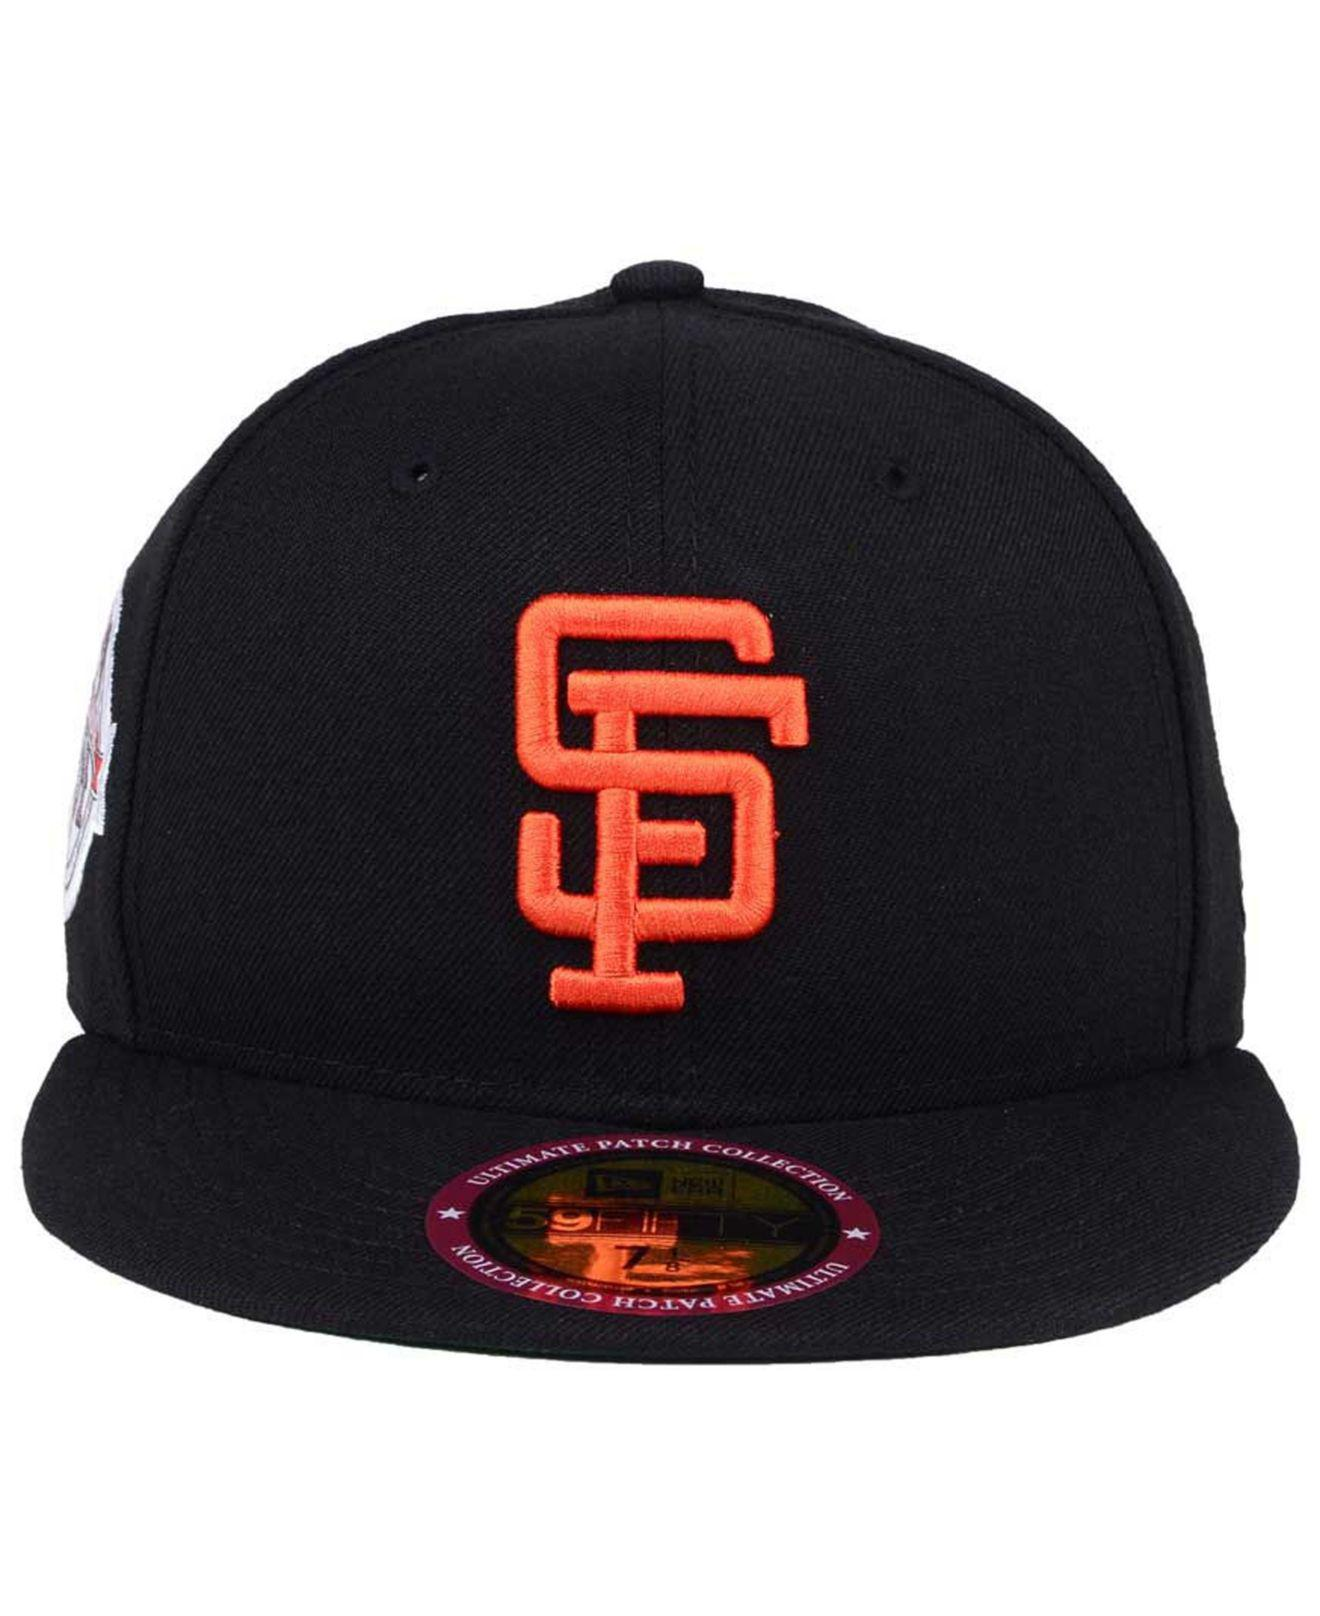 best service 5a21a 75e41 KTZ San Francisco Giants Ultimate Patch All Star Collection 59fifty ...